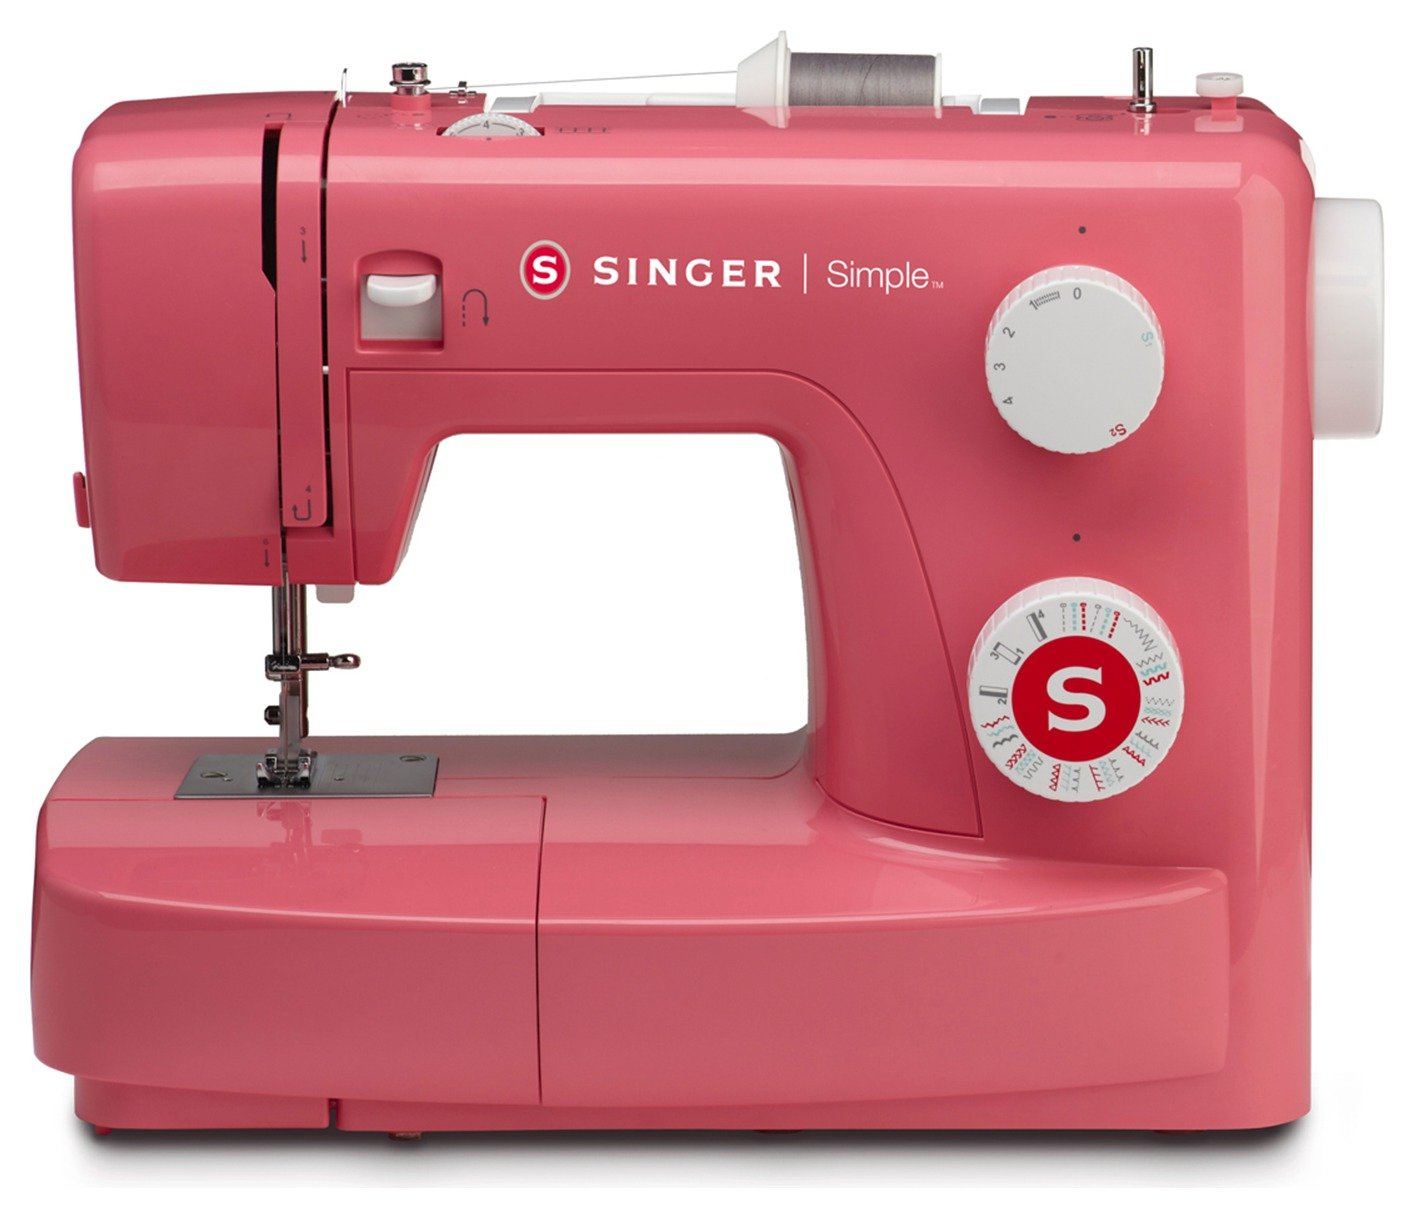 Singer Simple Pink Sewing Machine